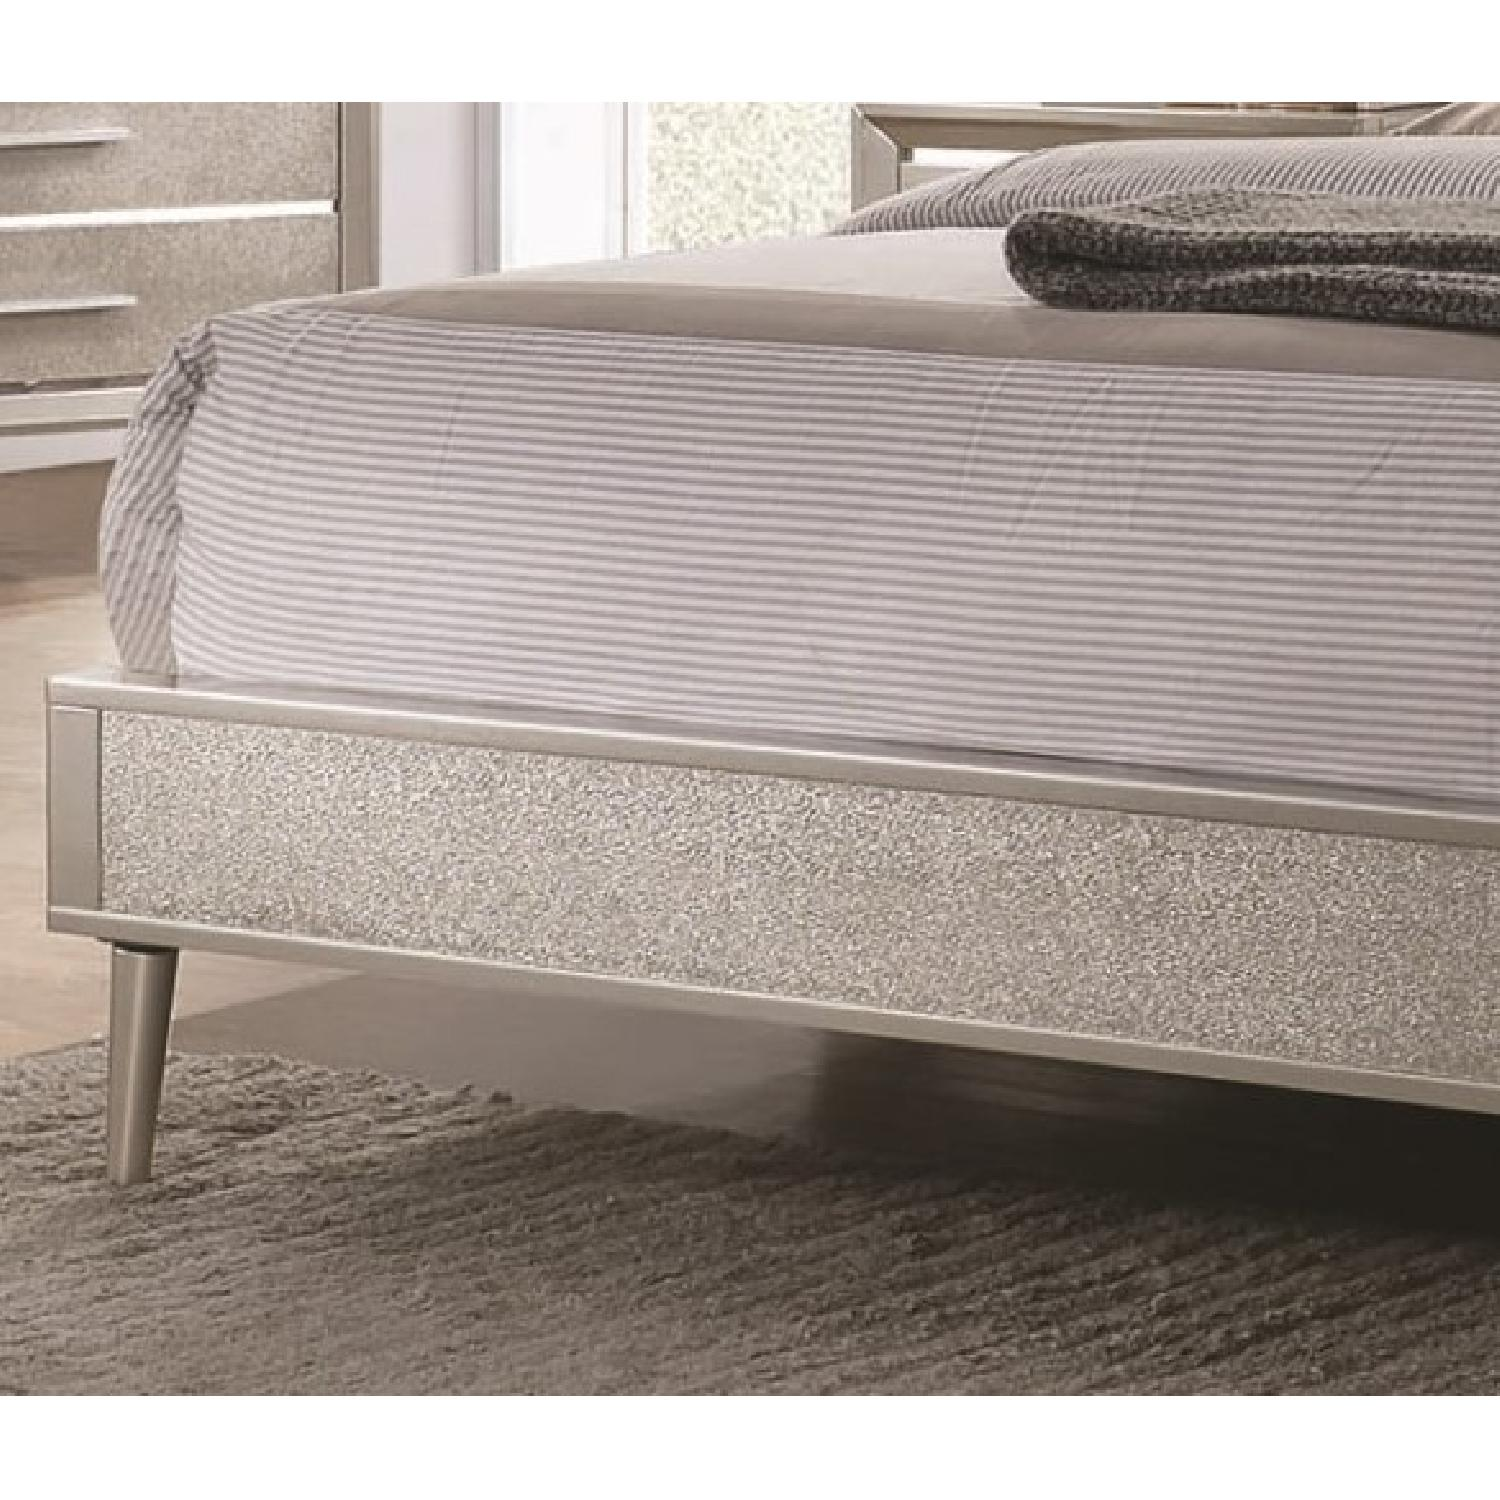 Mid Century Style Twin Bed in Metallic Silver Glitter Design - image-2